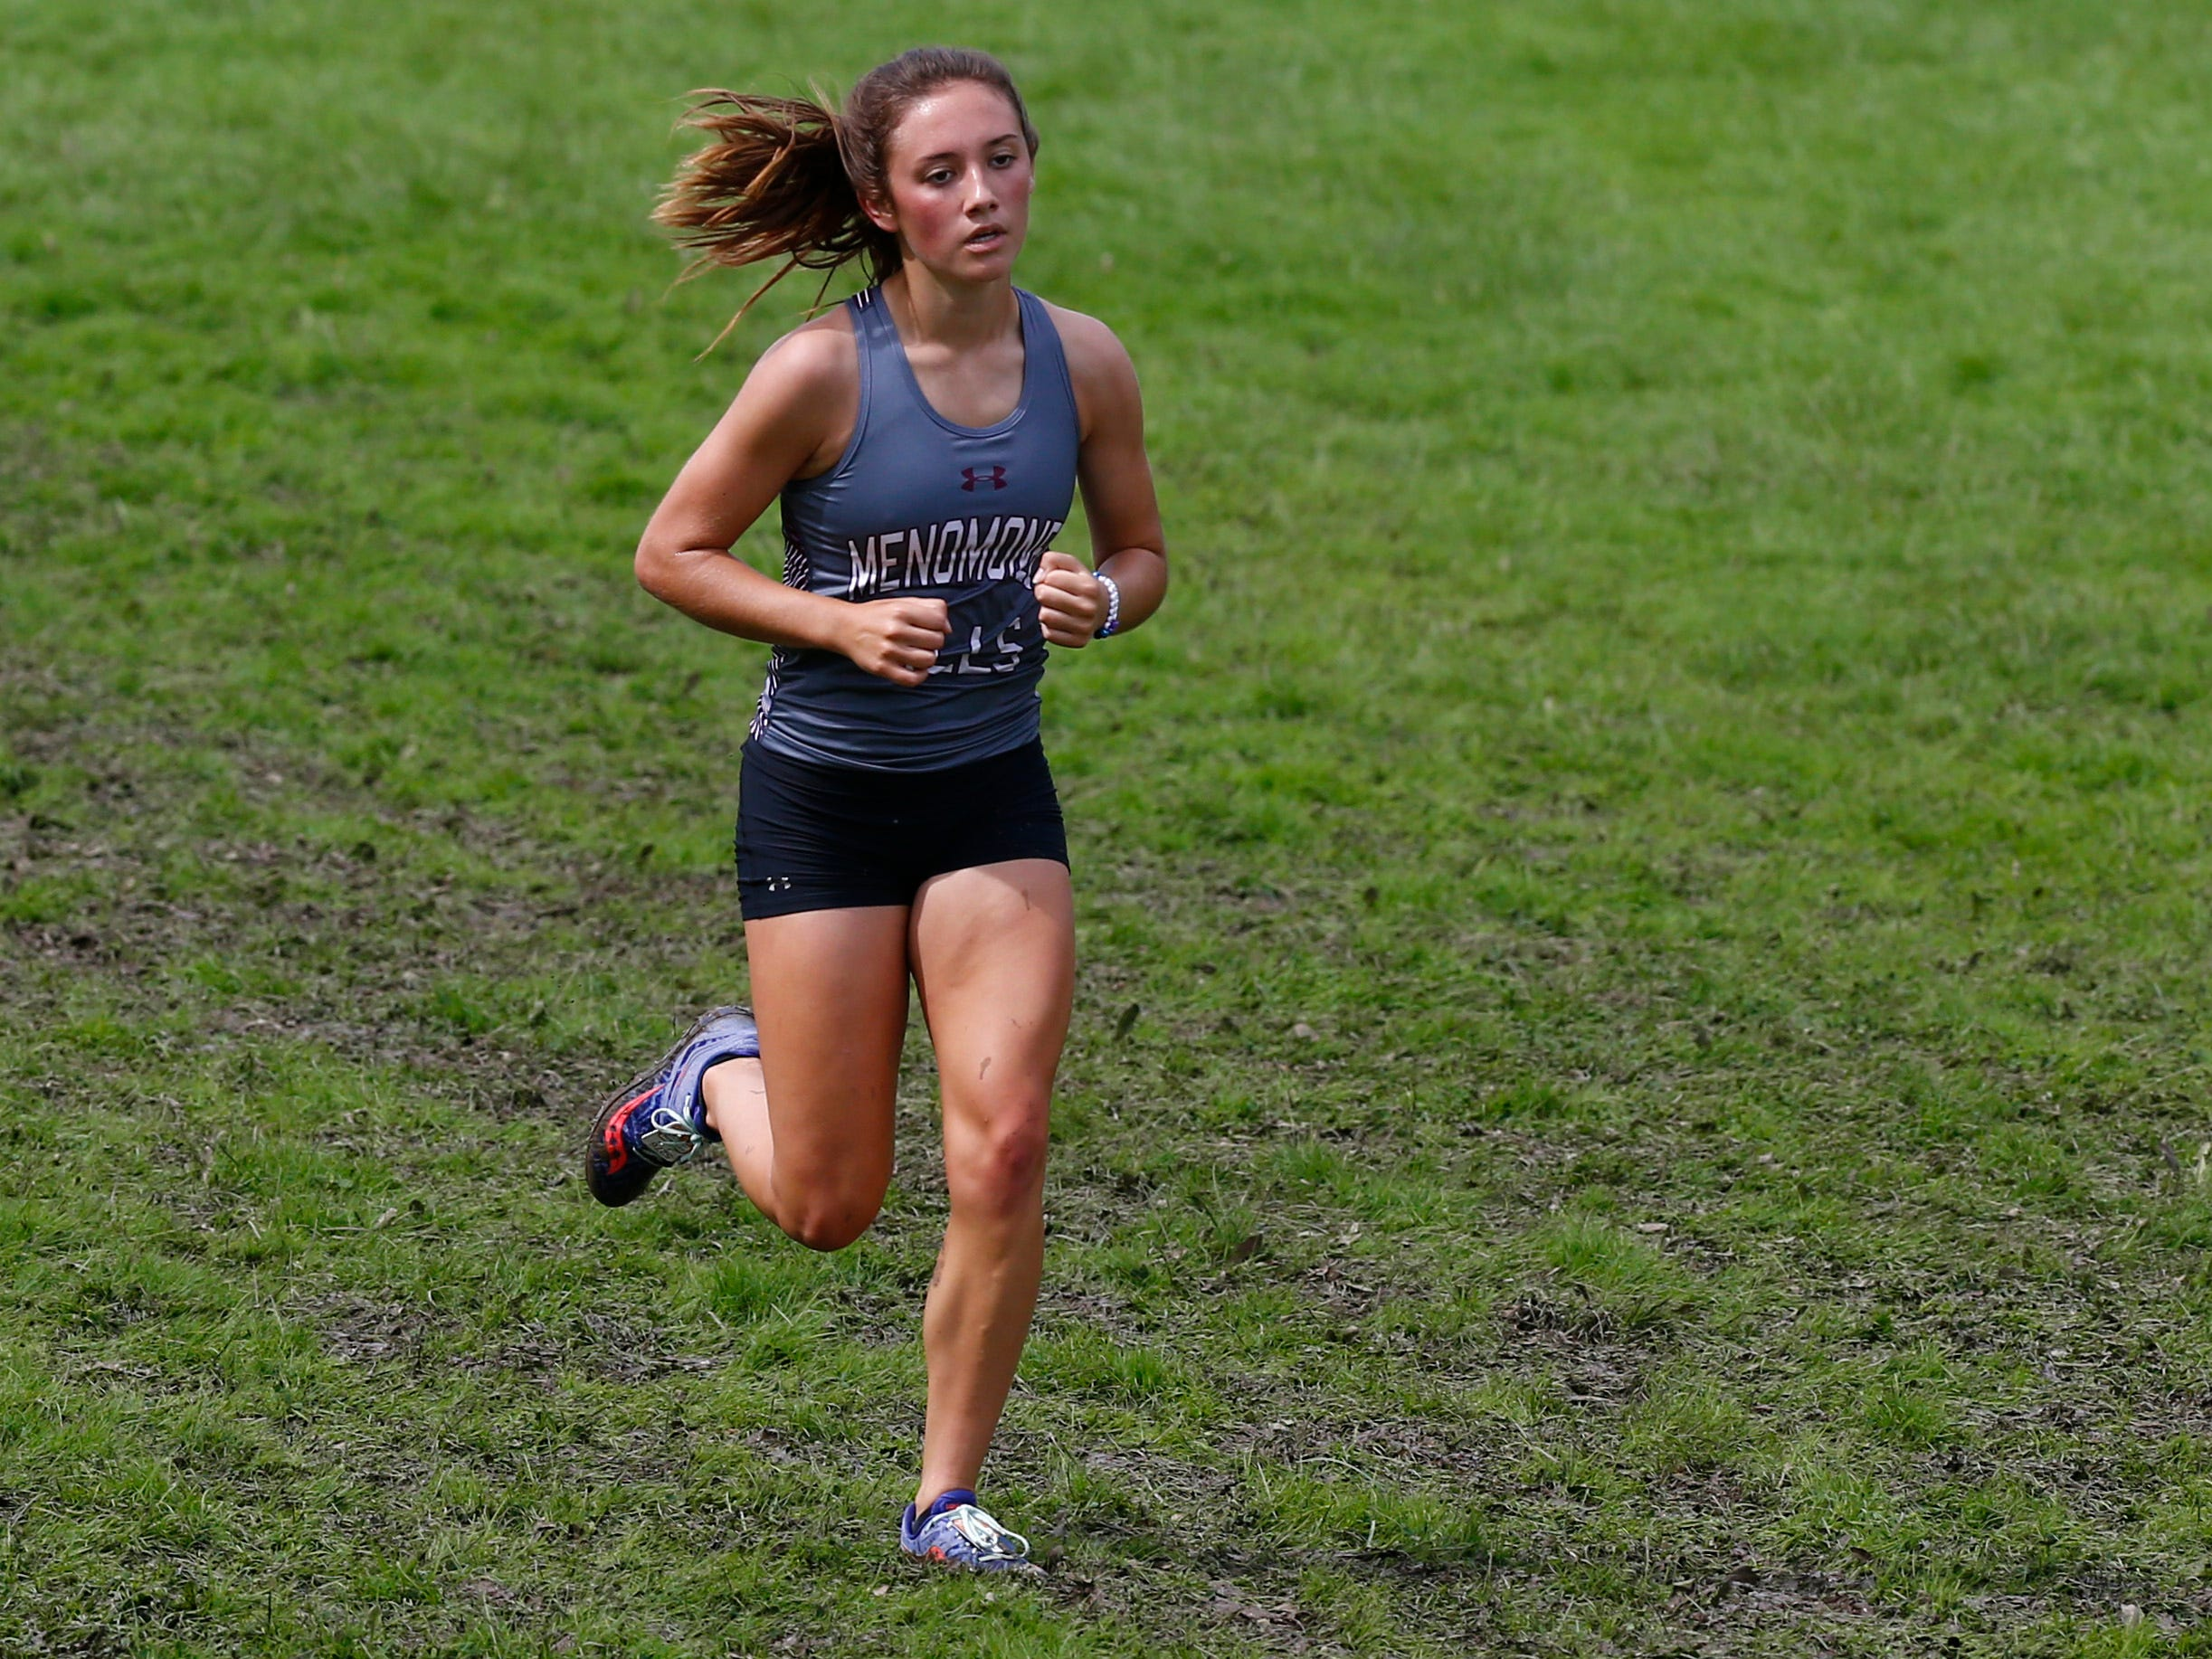 Menomonee Fall's Kylee Reeves heads into the final stretch of the Menomonee Falls Matt Hadler Cross Country Invitational at Rotary Park where she finished fourth of 76 runners on Sept. 8.